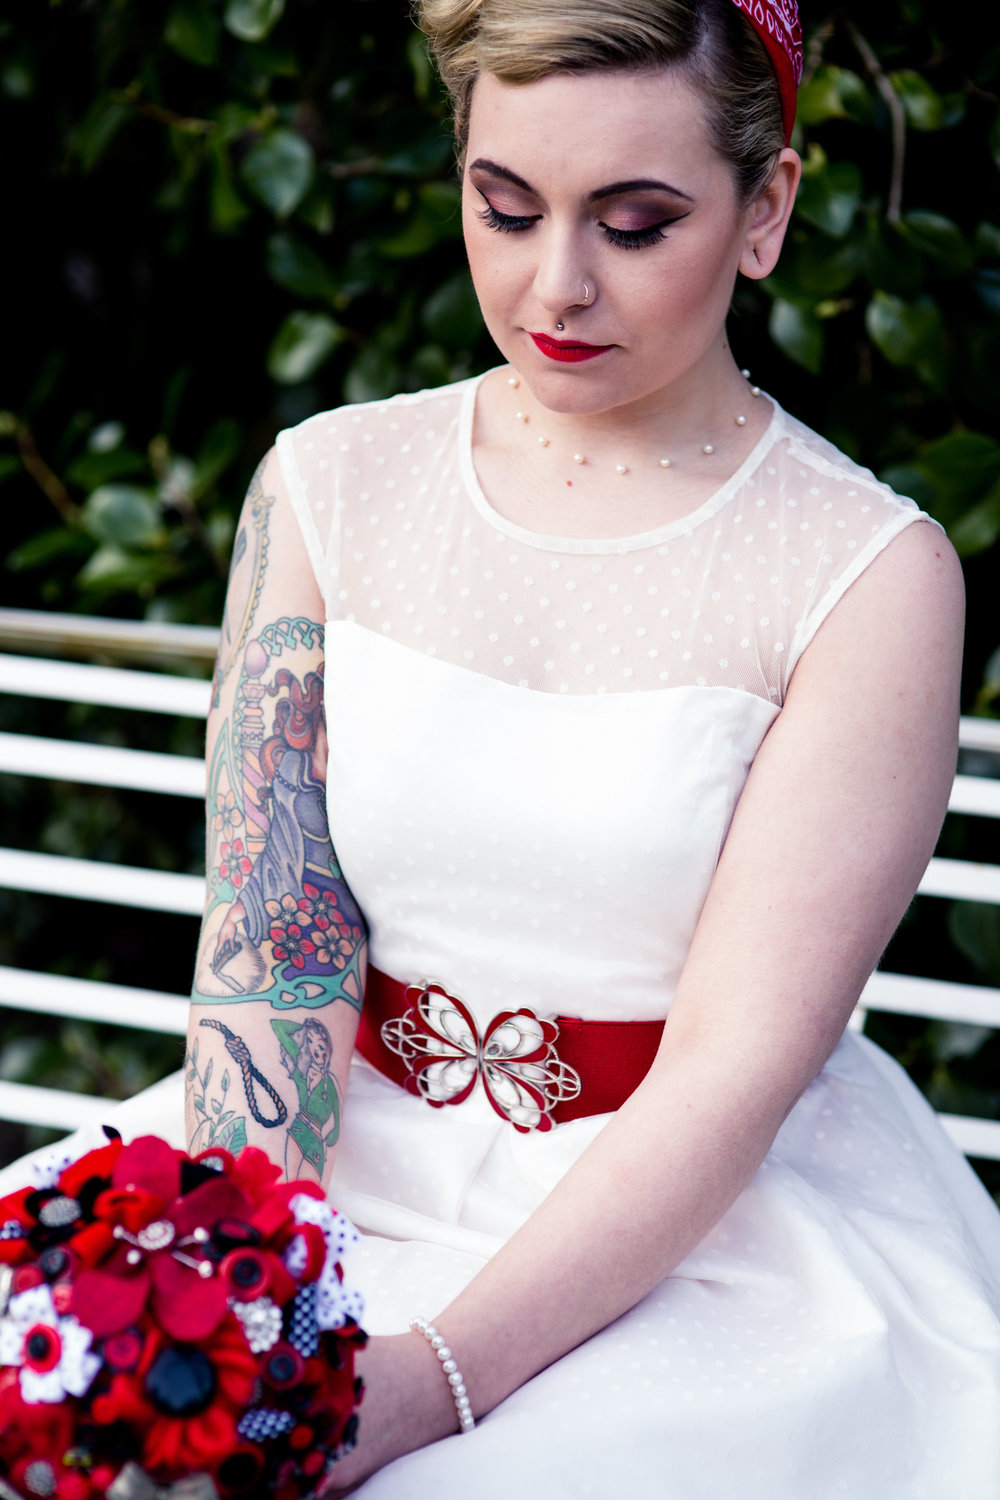 Photography: Jewell   Styling: Christine at Rock Hard Nails   Make Up: Kim Berridge   Hair: Victoria Wollin   Flowers: Heidi at The Flower Studio   Model: Hannah Quilliam